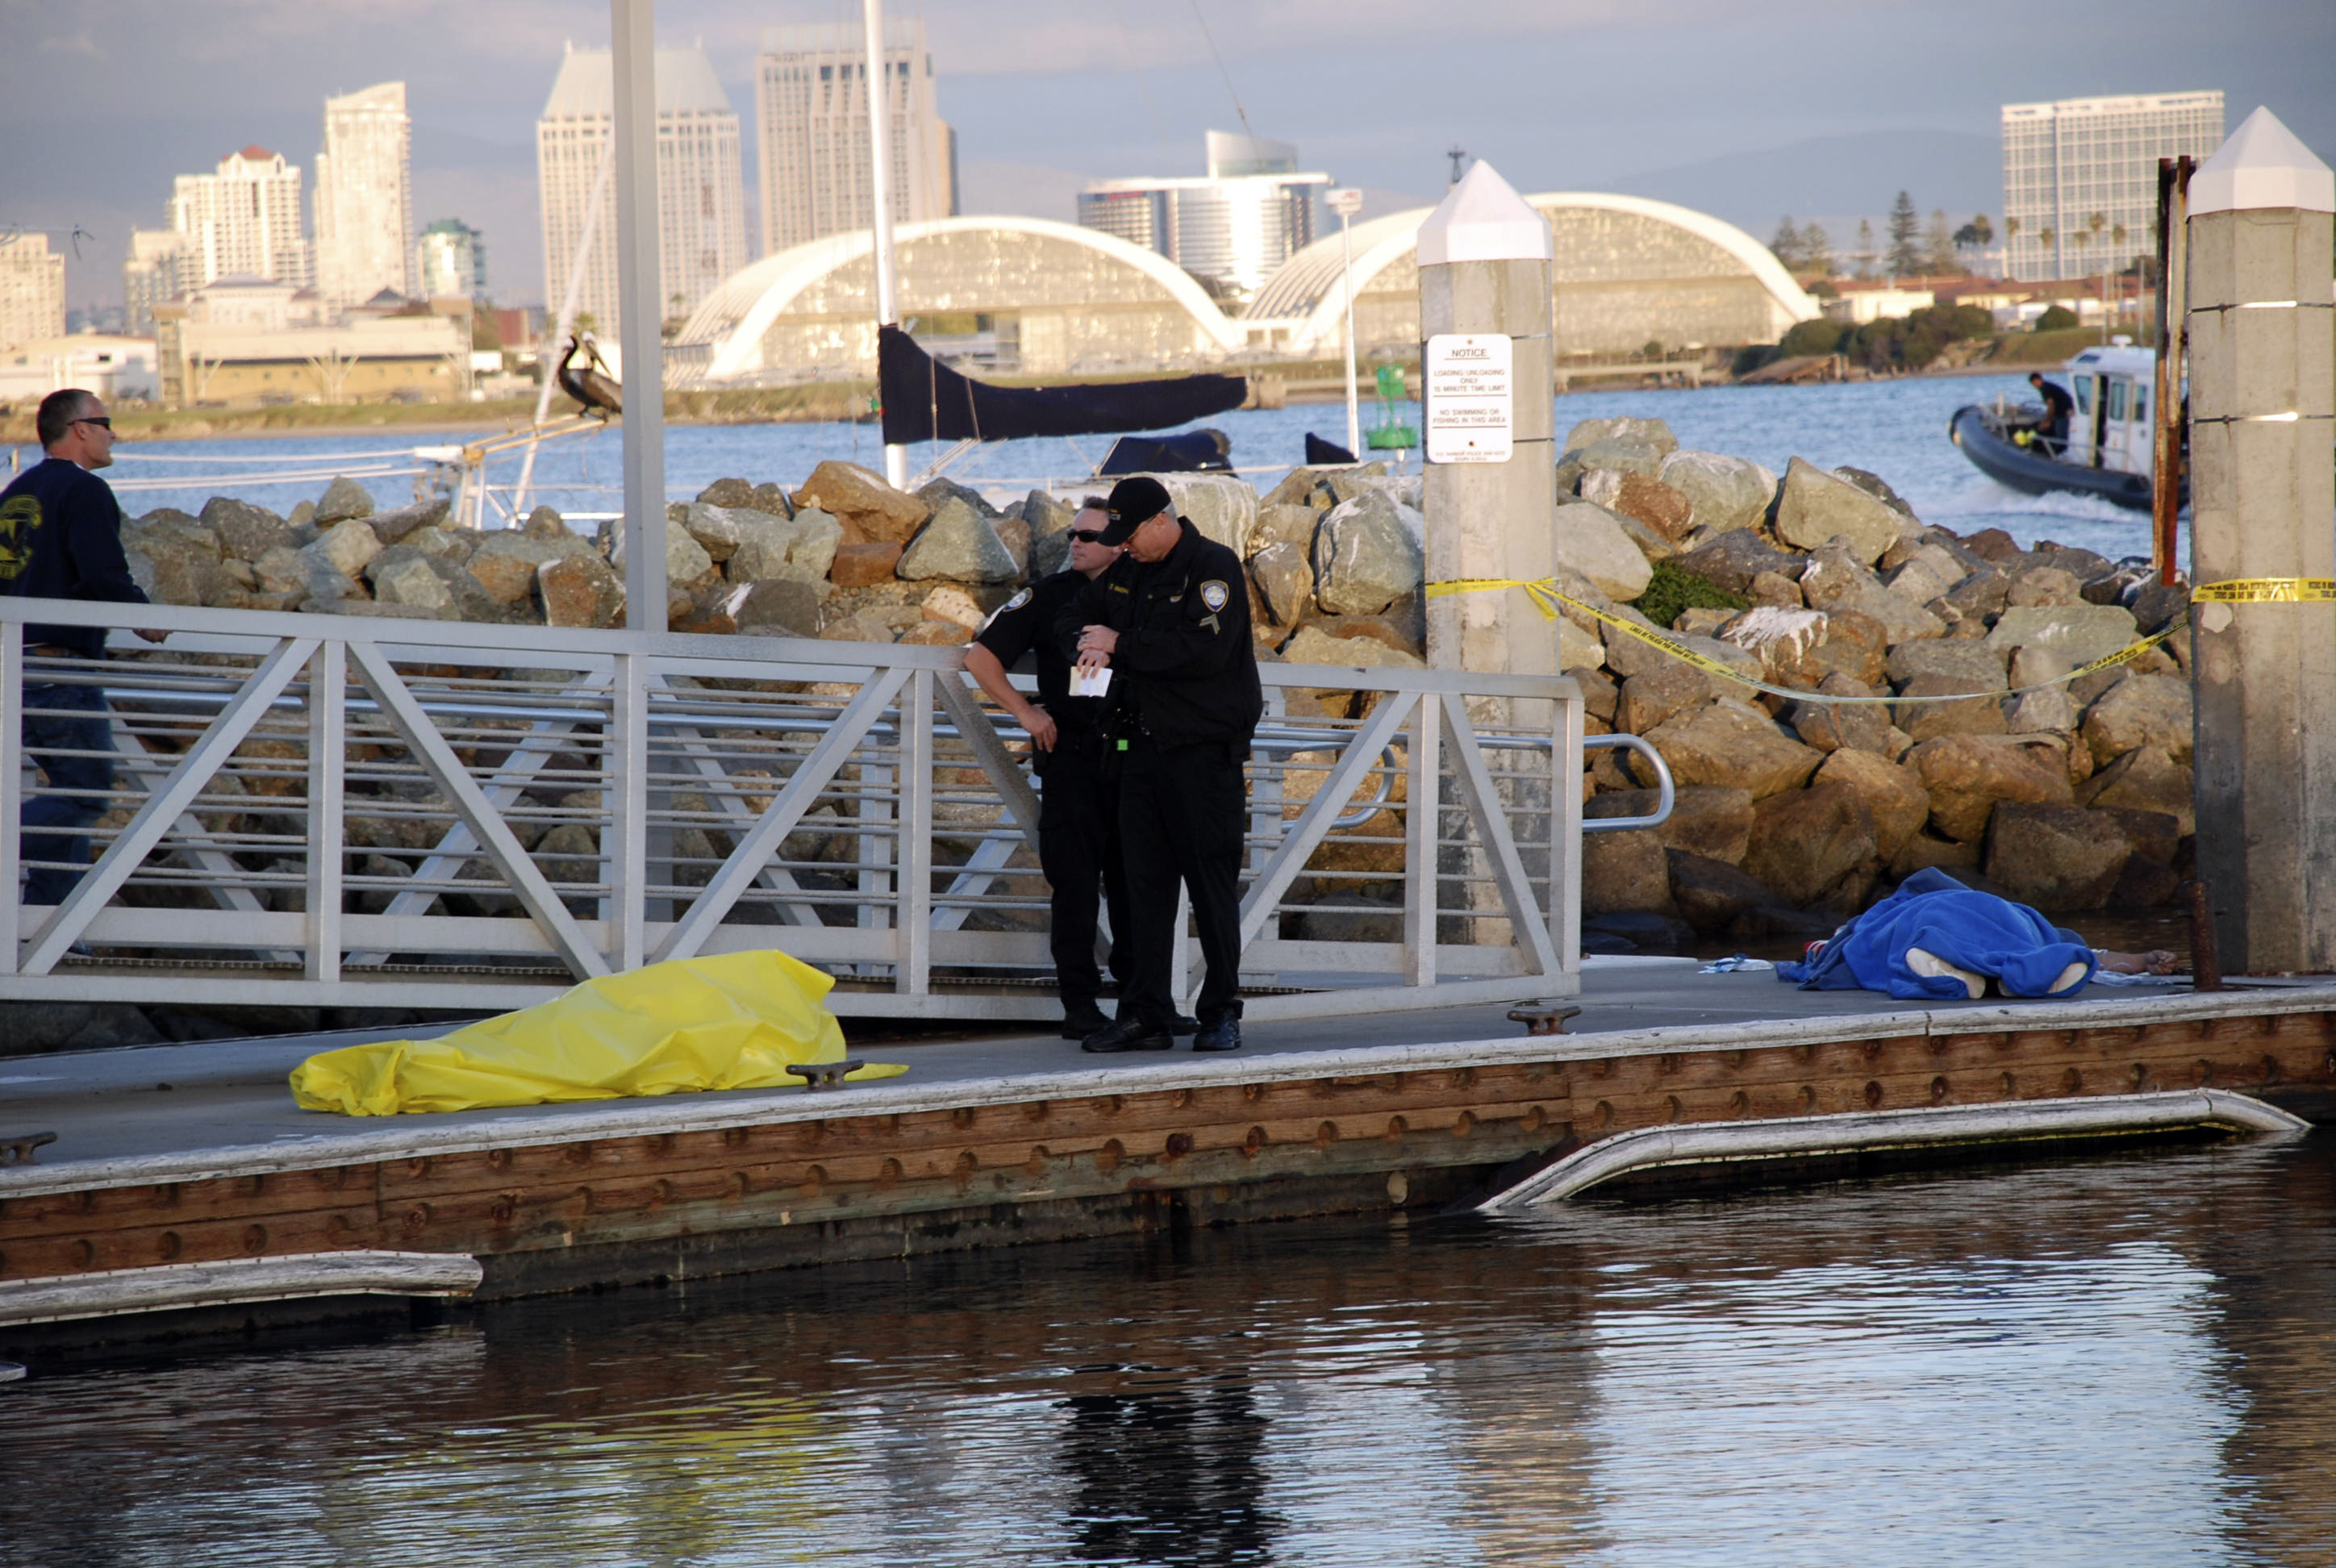 Boat Capsizes Off San Diego 2 Dead 8 Injured Cbs News